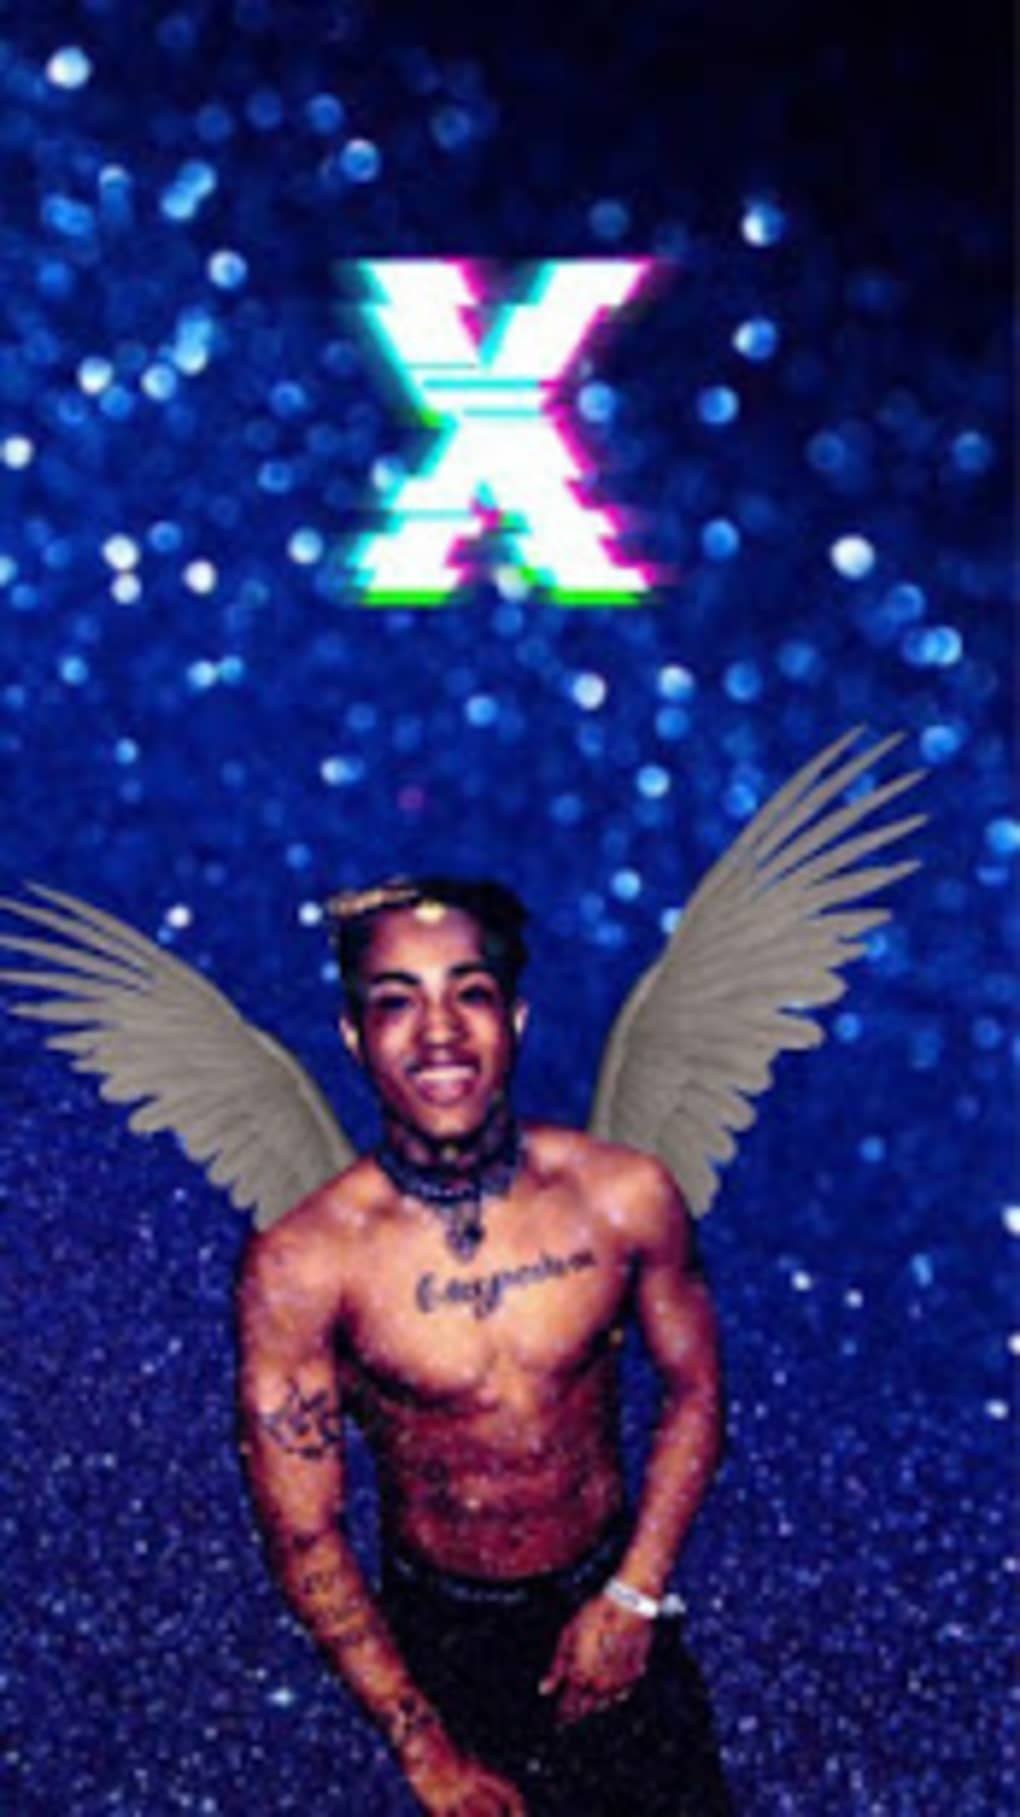 Xxxtentacion Wallpaper Iphone Posted By Zoey Simpson